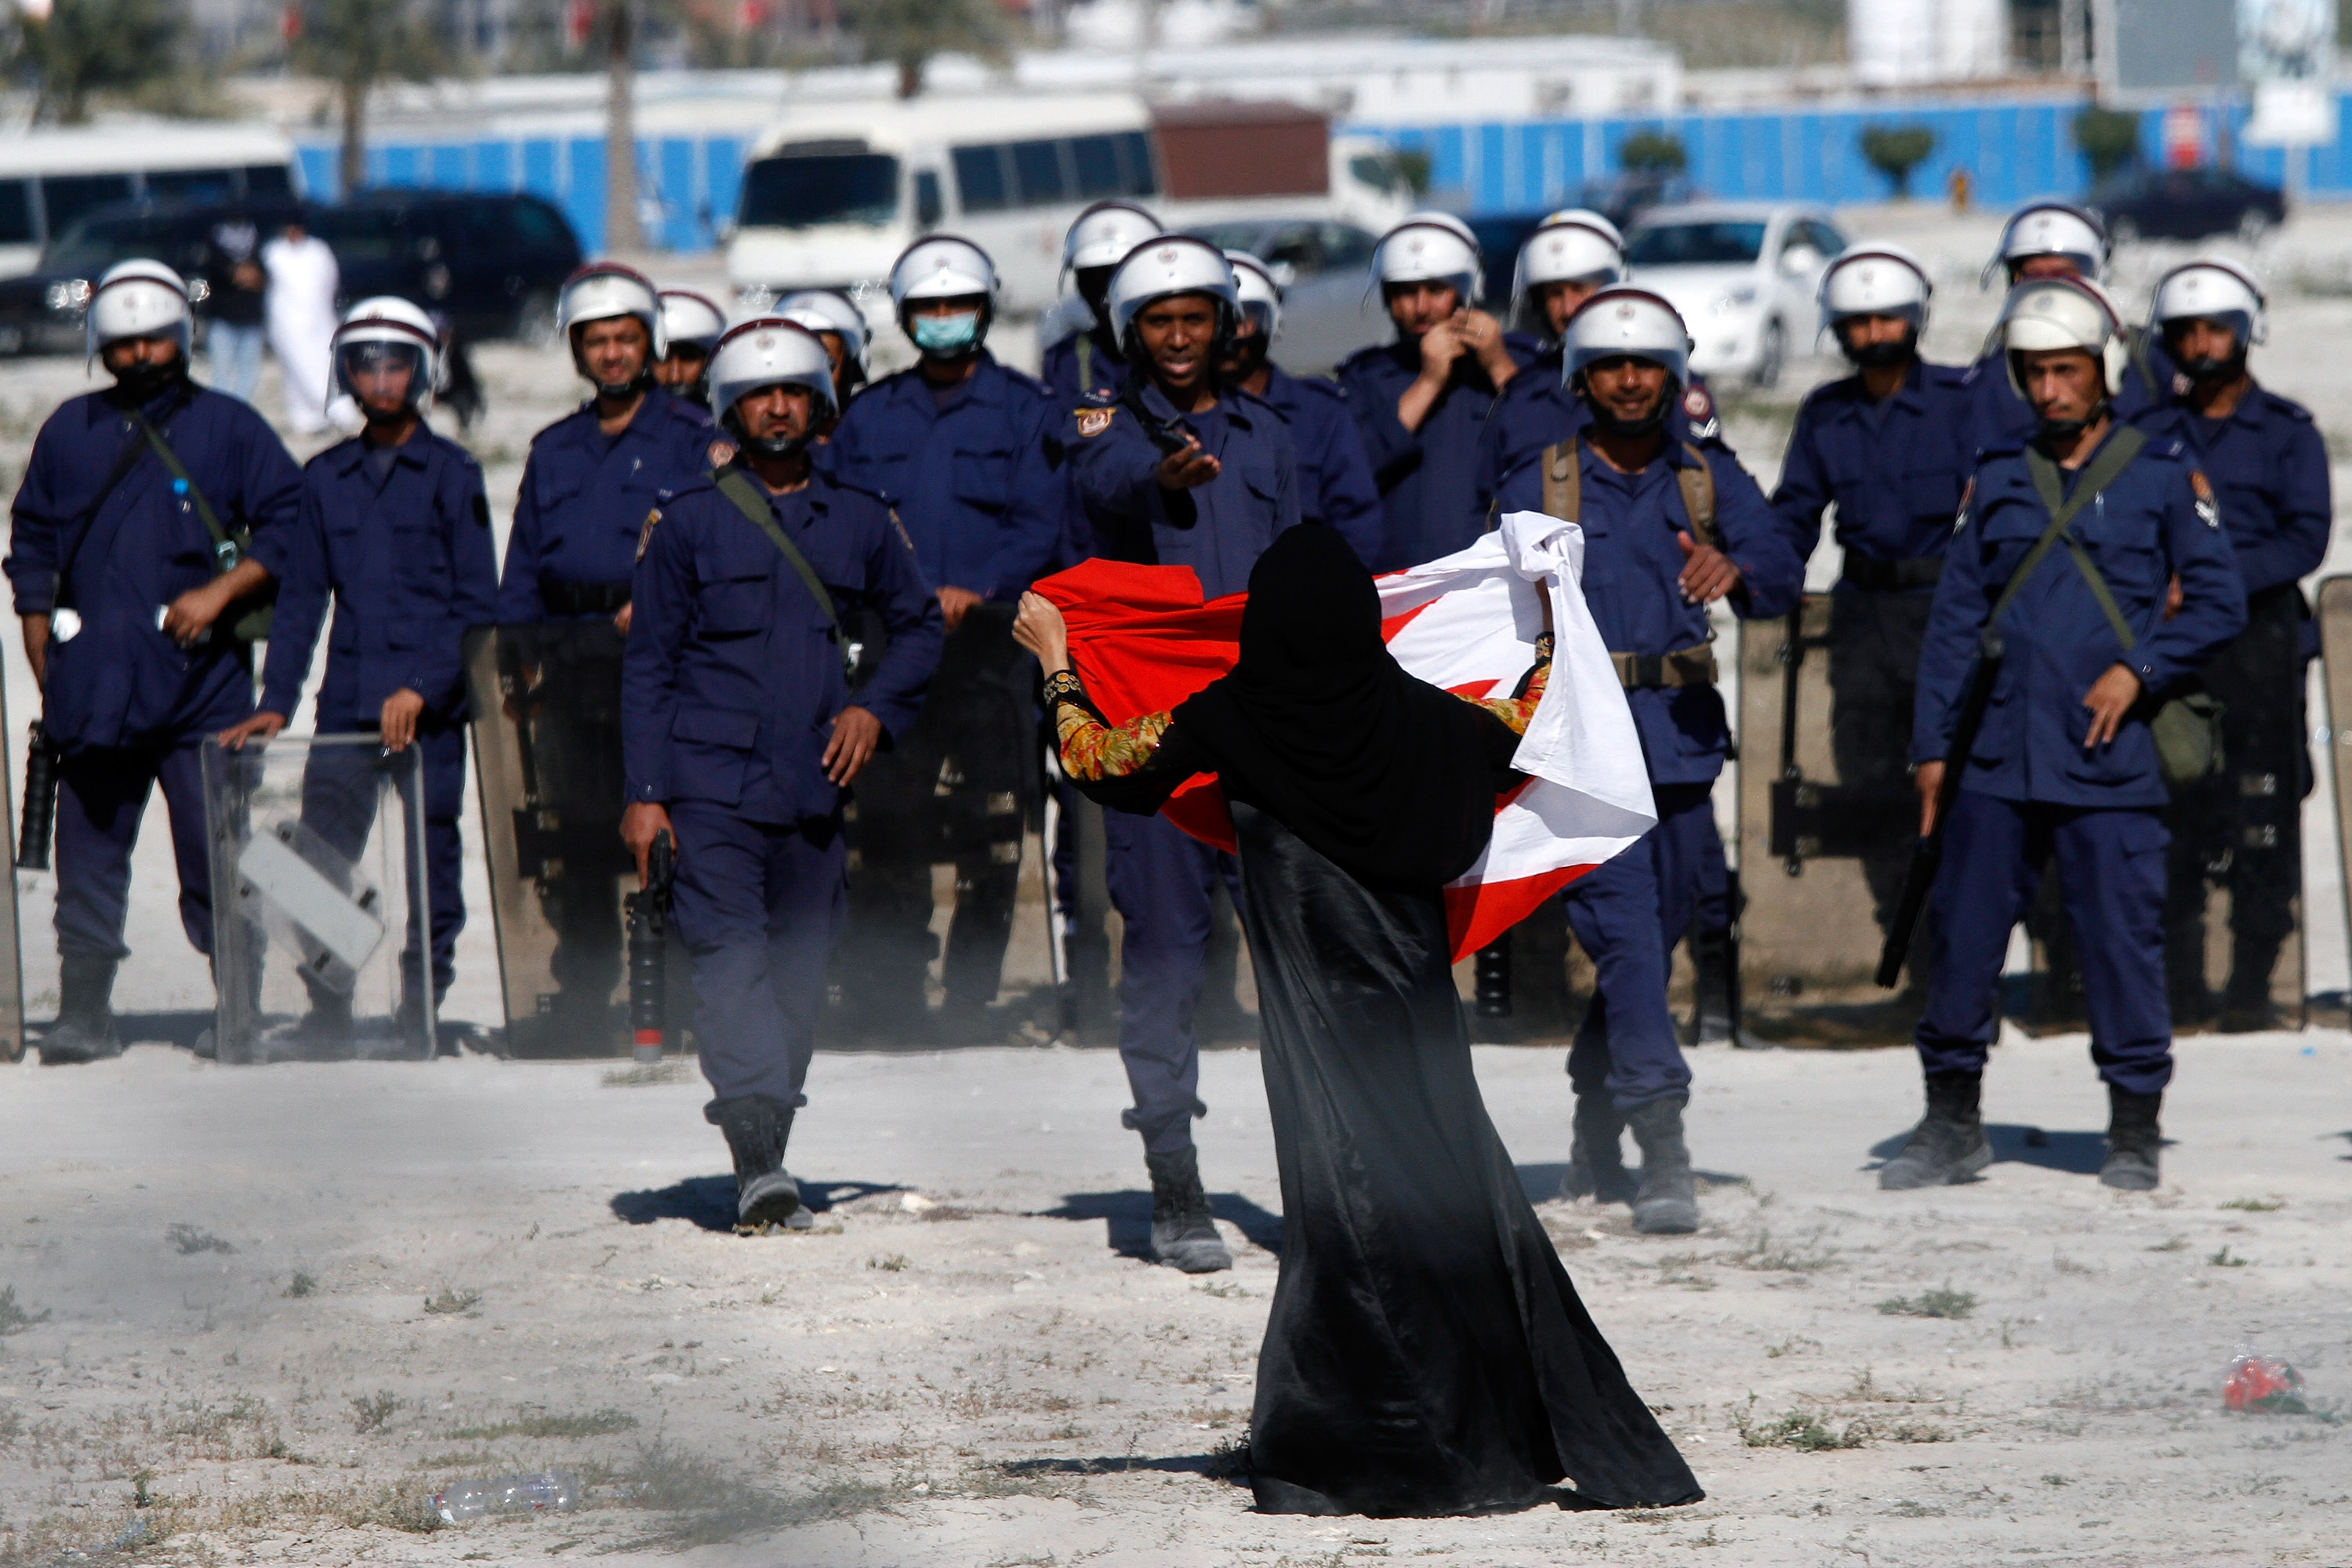 MANAMA, BAHRAIN - FEBRUARY 19:  An anti-government protestor gestures in front of police as demonstrators re-occupy Pearl roundabout on February 19, 2011 in Manama, Bahrain. Anti-government protesters were fired at with tear gas and rubber bullets as they marched to retake the roundabout, injuring several protestors at the site of two deadly previous confrontations between police and demonstrators. The Bahrain military has since backed off by order of Crown Prince Salman bin Hamad Al Khalifa, and instead police have been positioned to squelch the uprising.  (Photo by John Moore/Getty Images)